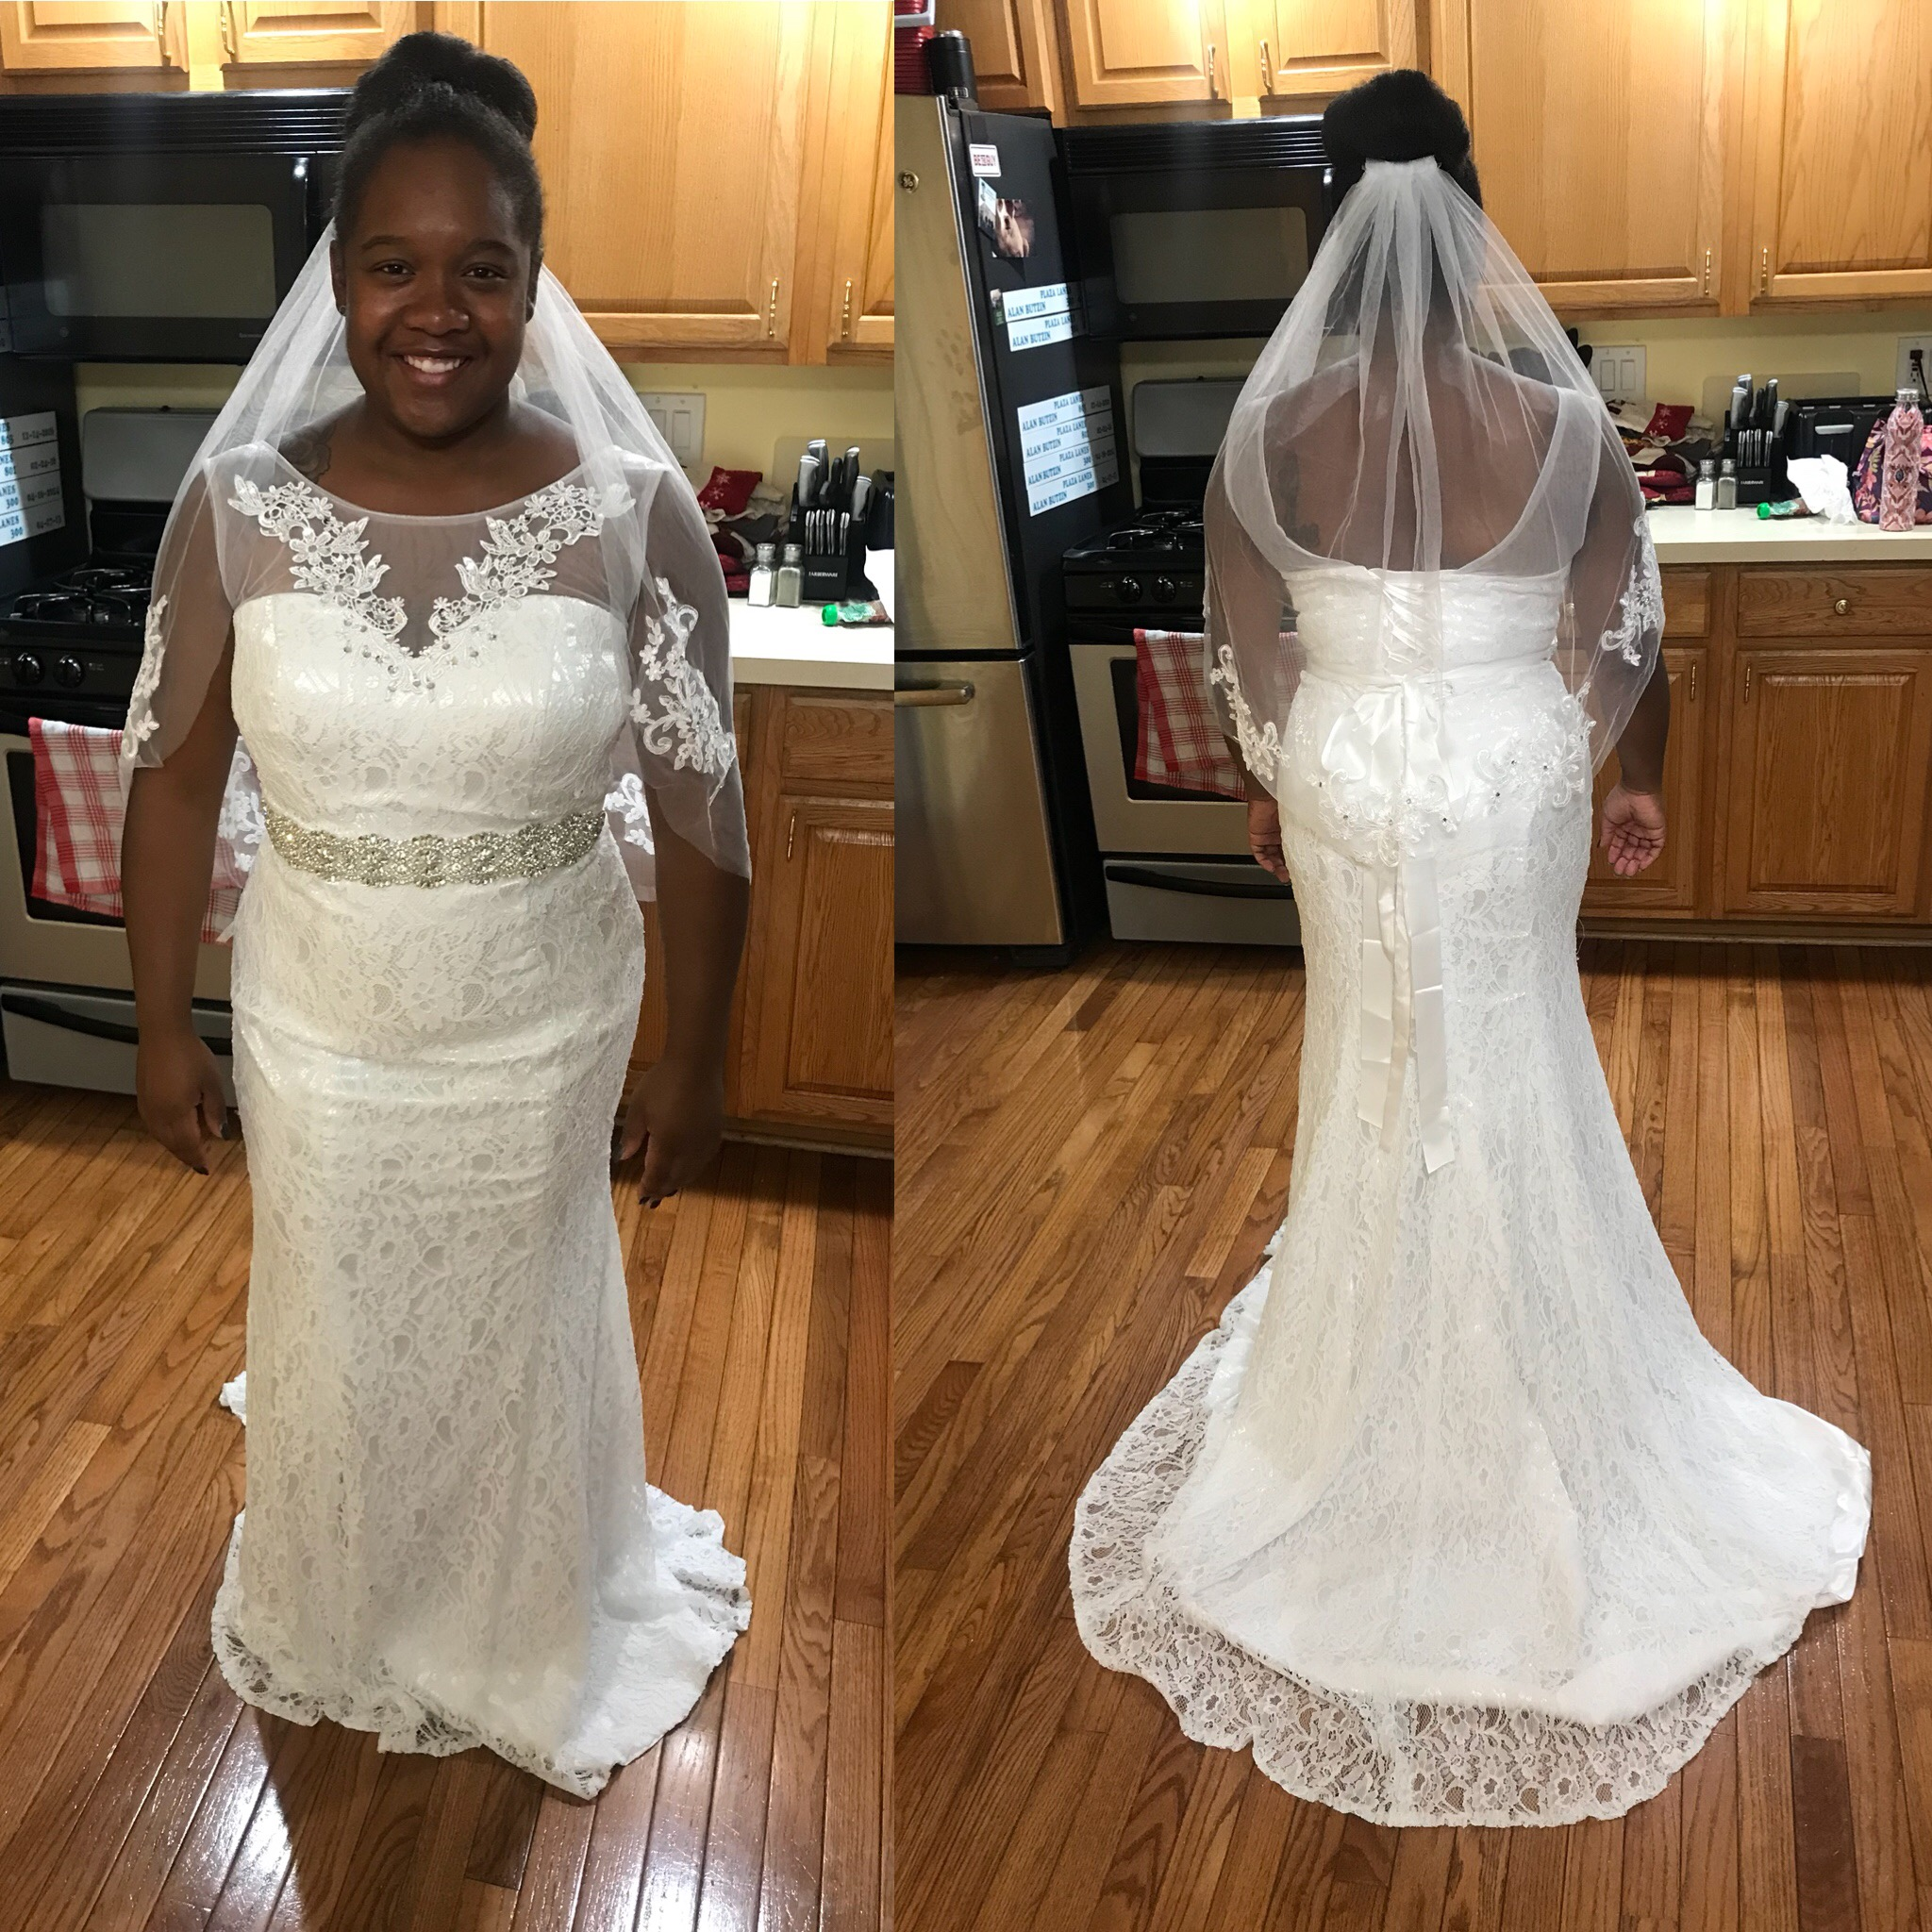 Fit And Flair With Jeweled Waist Sash And Veil